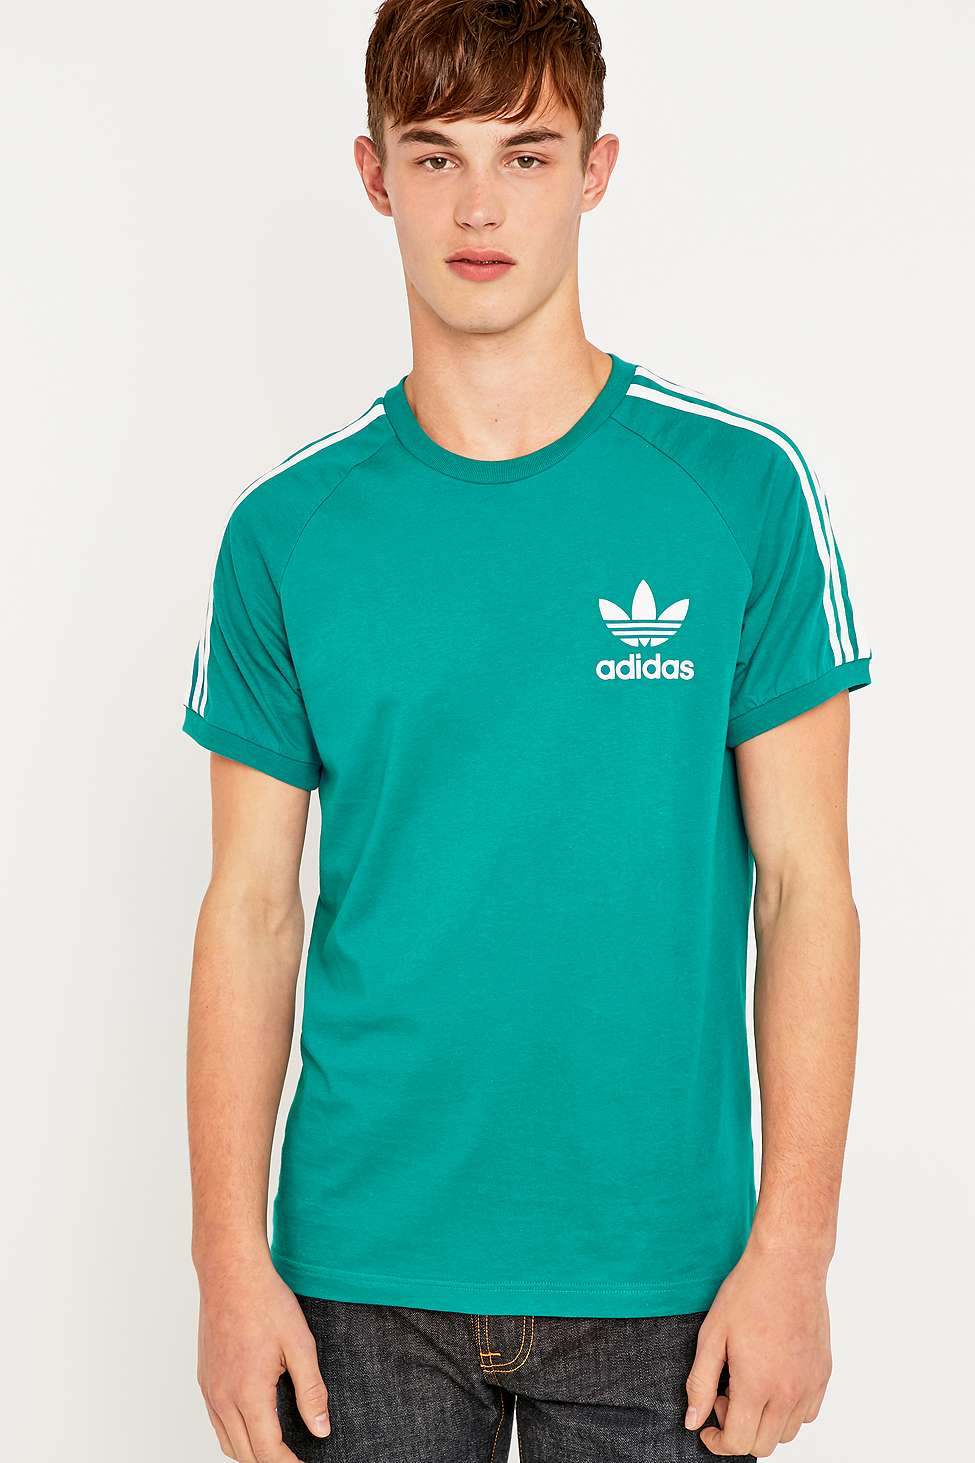 outlet store ccd5d ba6ed adidas Originals California Tee in Green for Men - Lyst